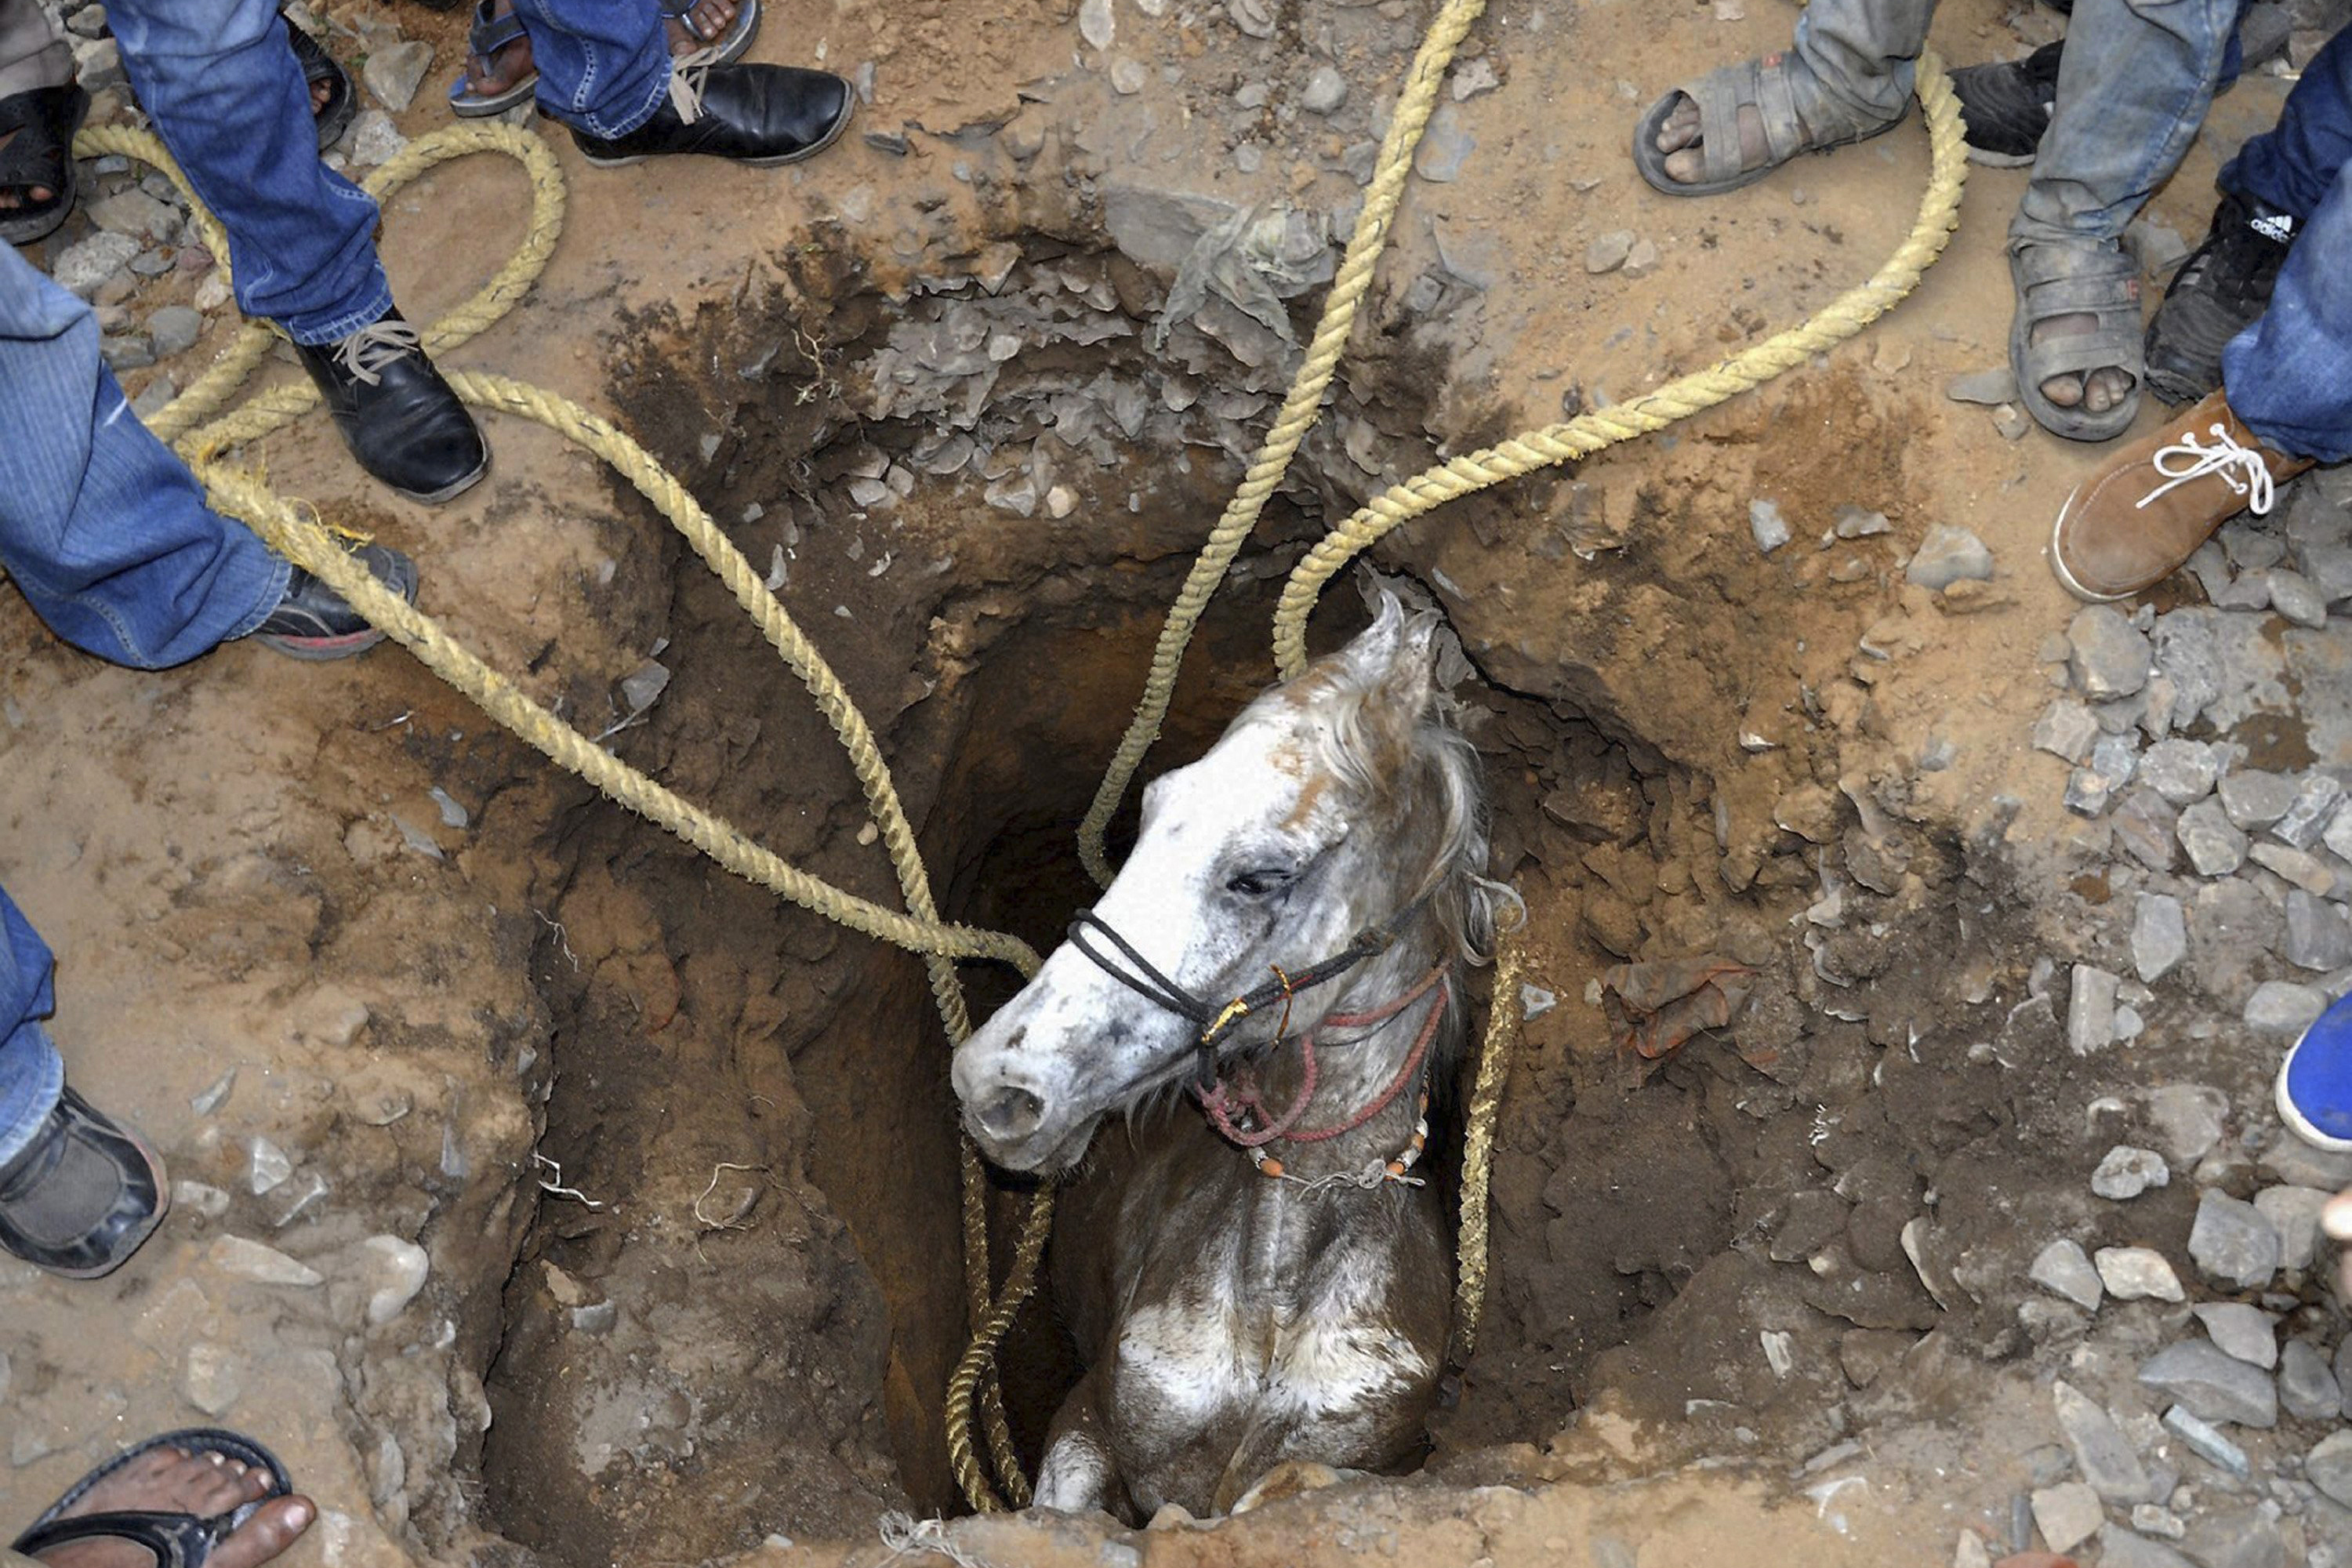 People stand around a pit to rescue a horse that fell in, in Jalandhar, in the northern Indian state of Punjab, March 5, 2014. The horse was rescued from the pit, dug to erect electric poles, after a two-hour rescue operation, according to local reports.